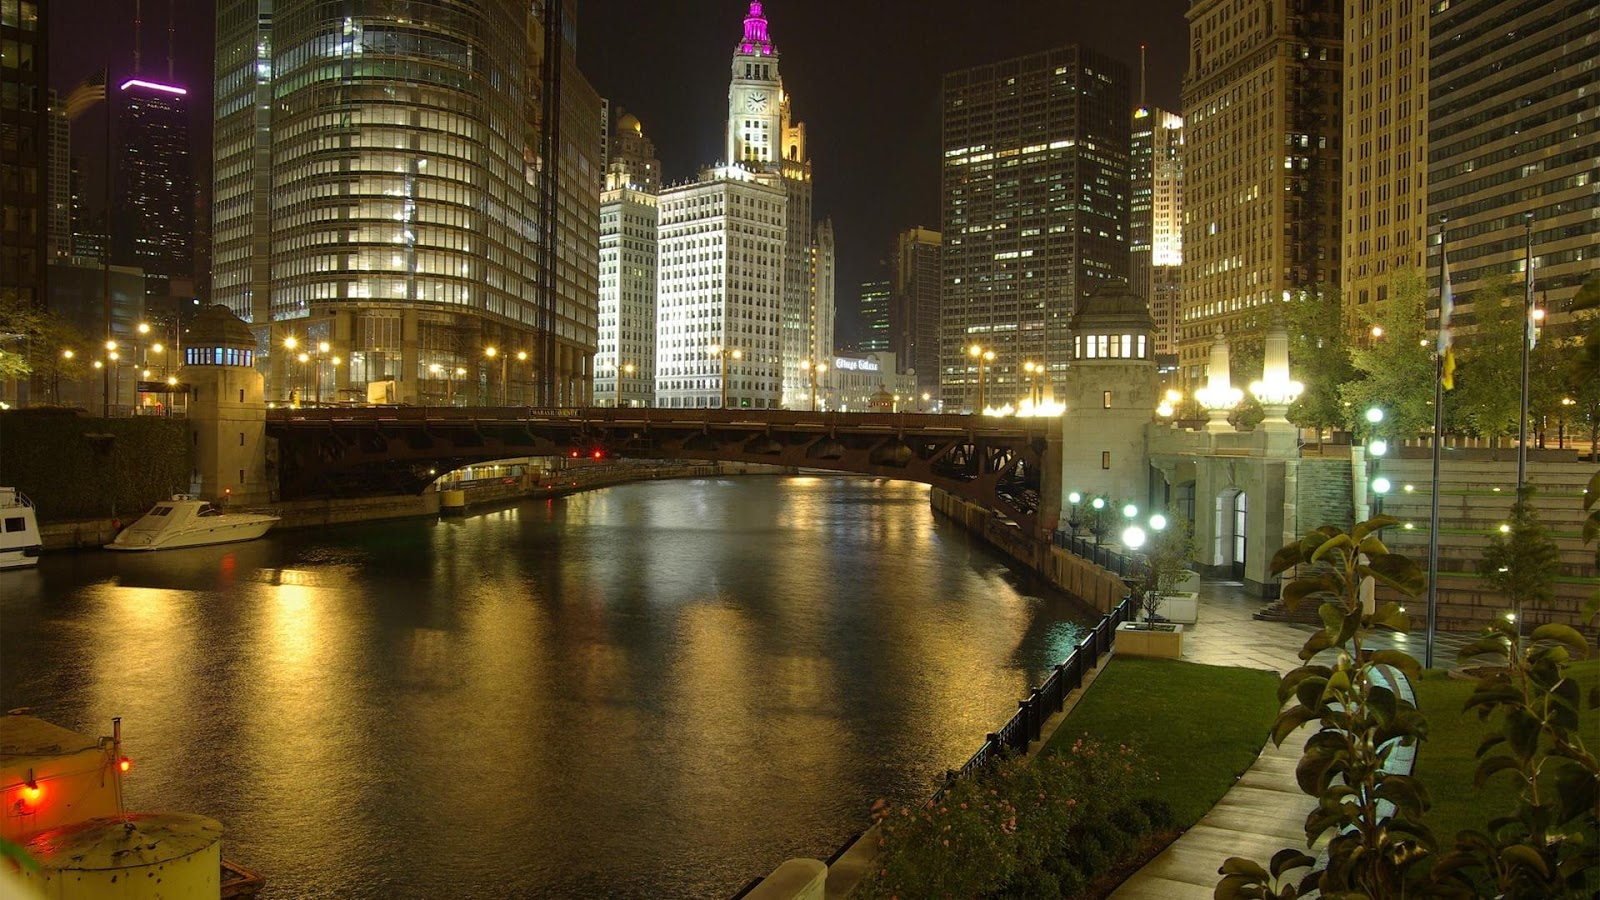 City Chicago River at Night